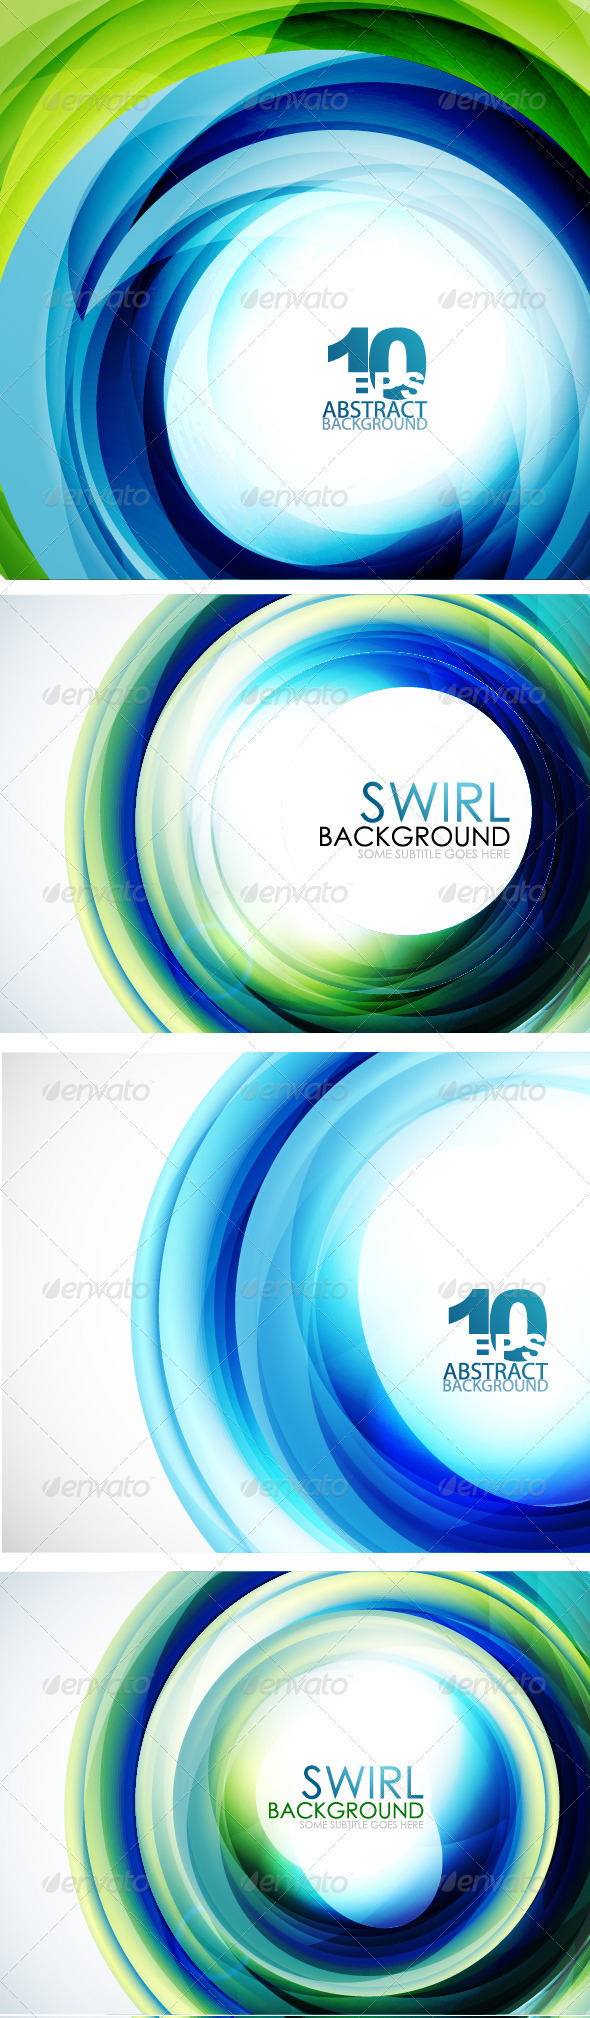 Blue Swirl Backgrounds - Backgrounds Decorative